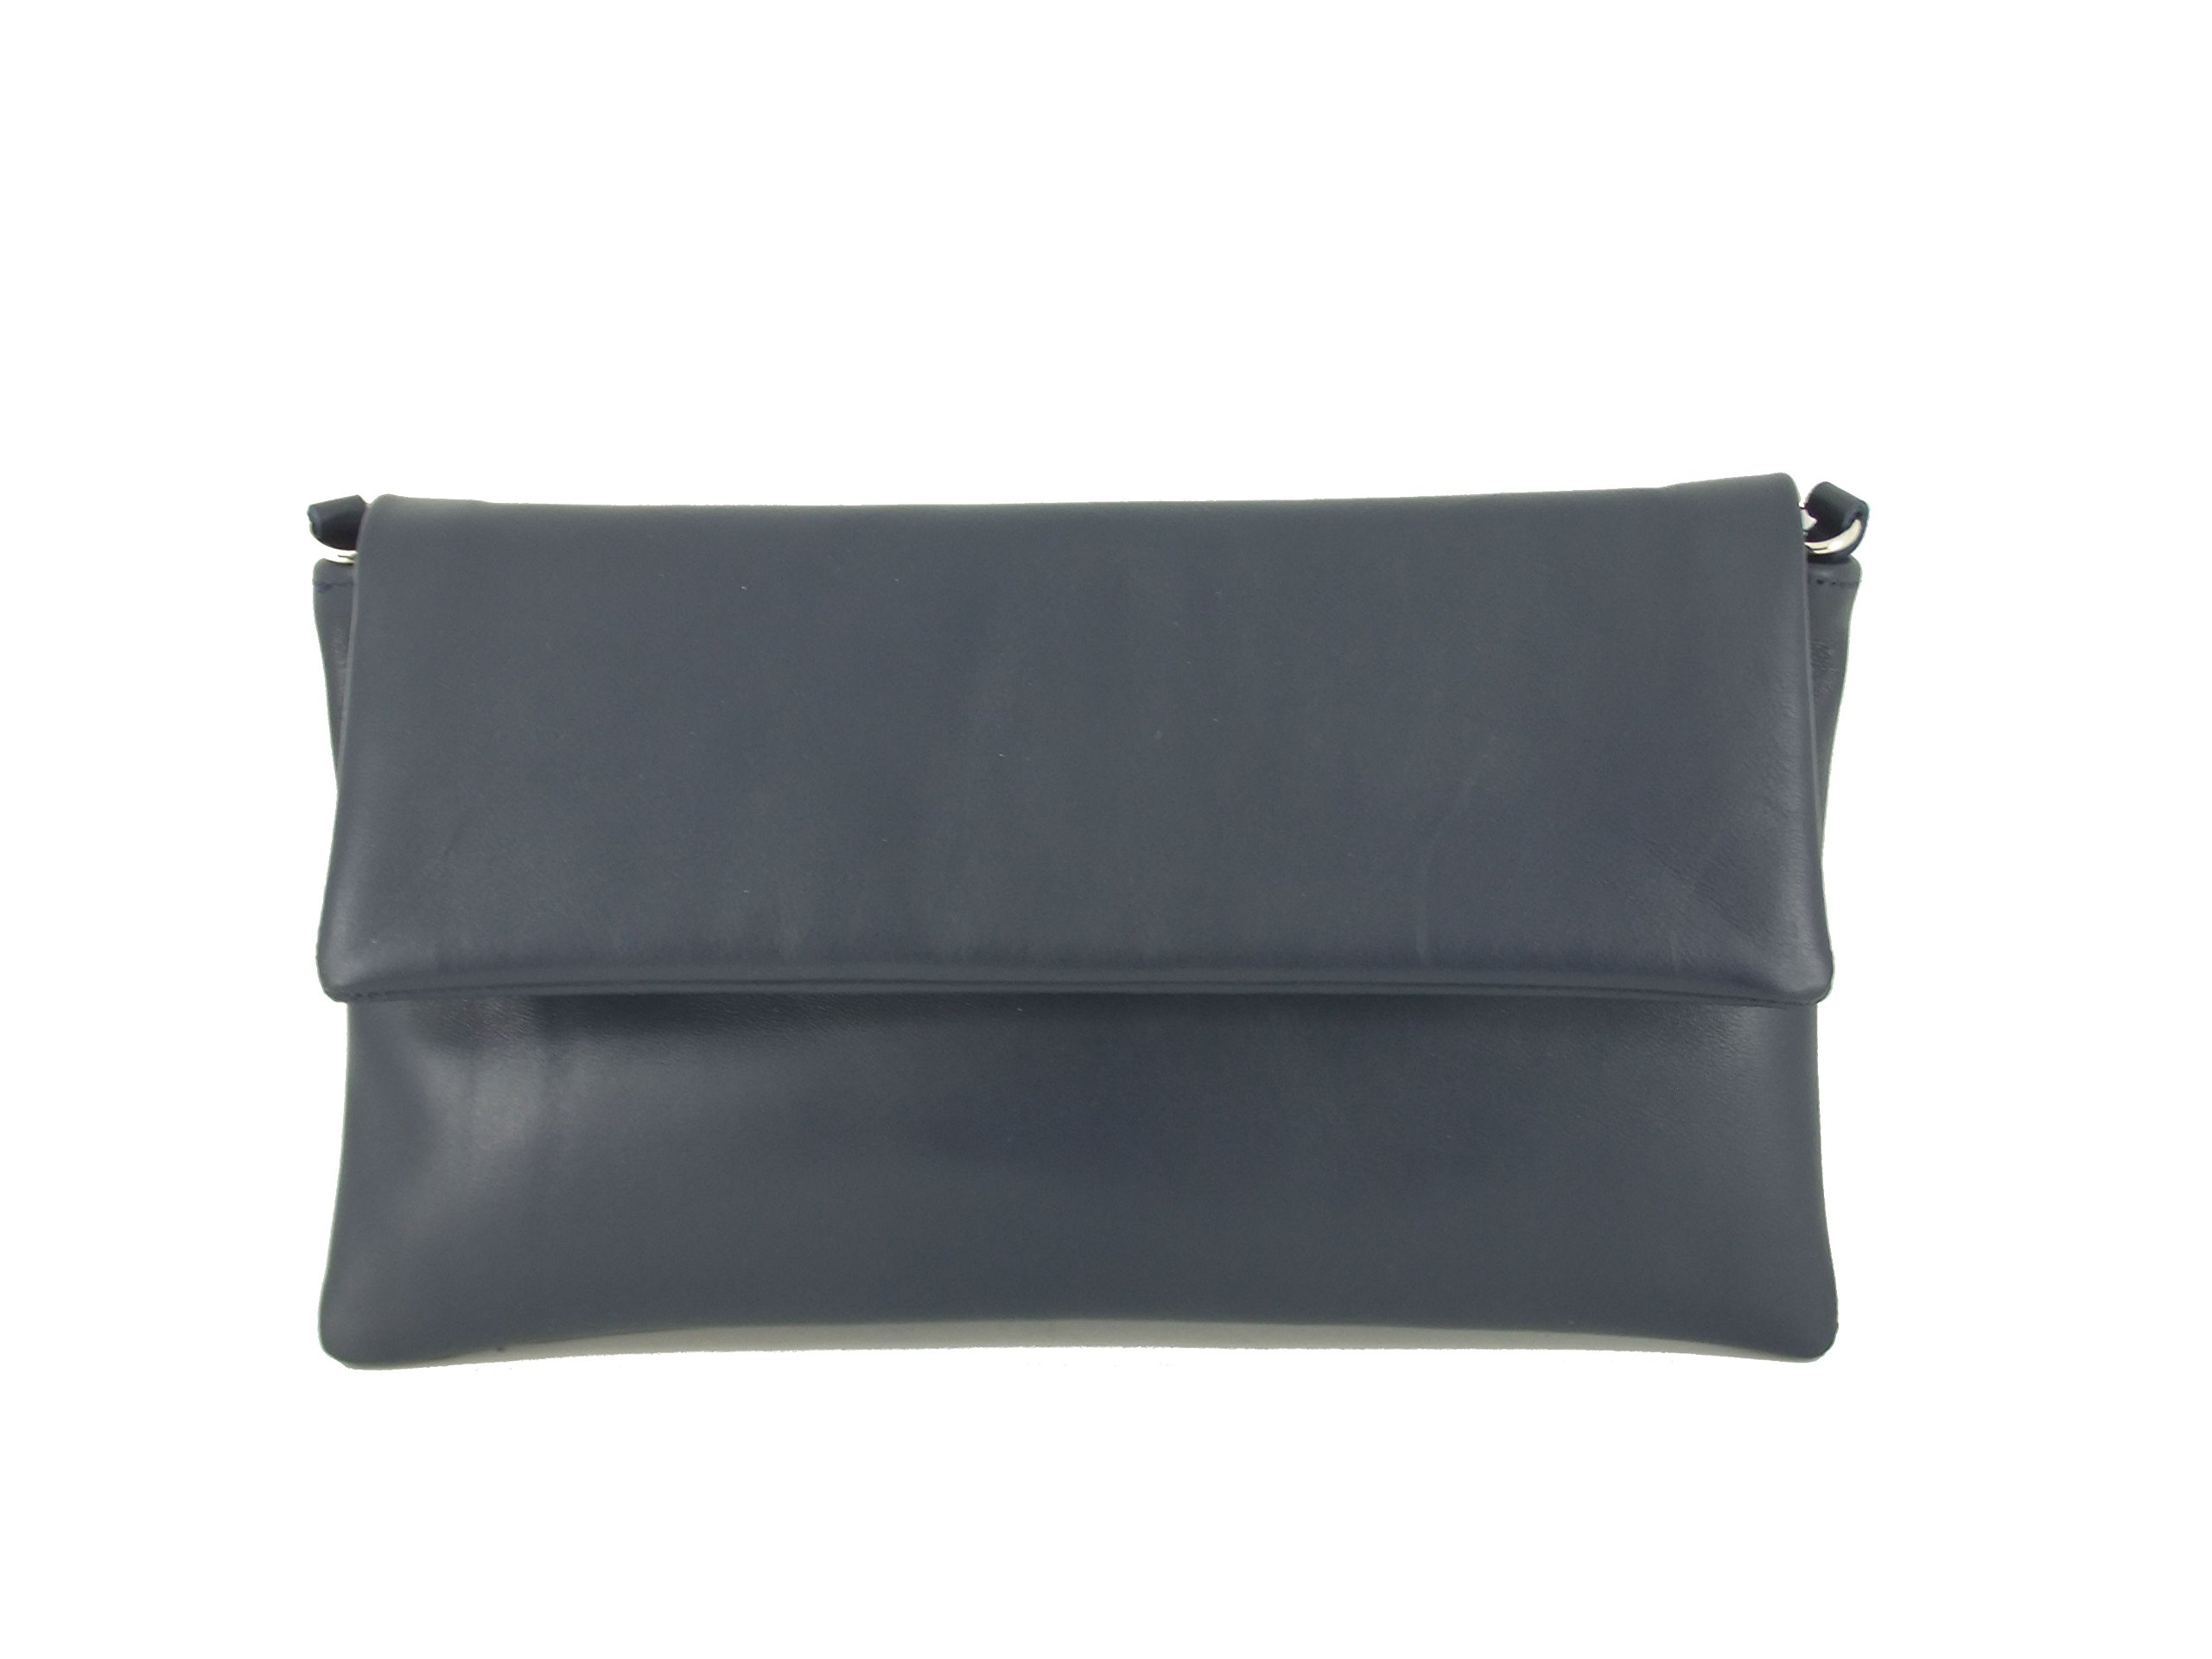 Loni Womens Fine Compact Size Real Leather Clutch Bag/Shoulder Bag Wedding/Occasion Bag In Navy